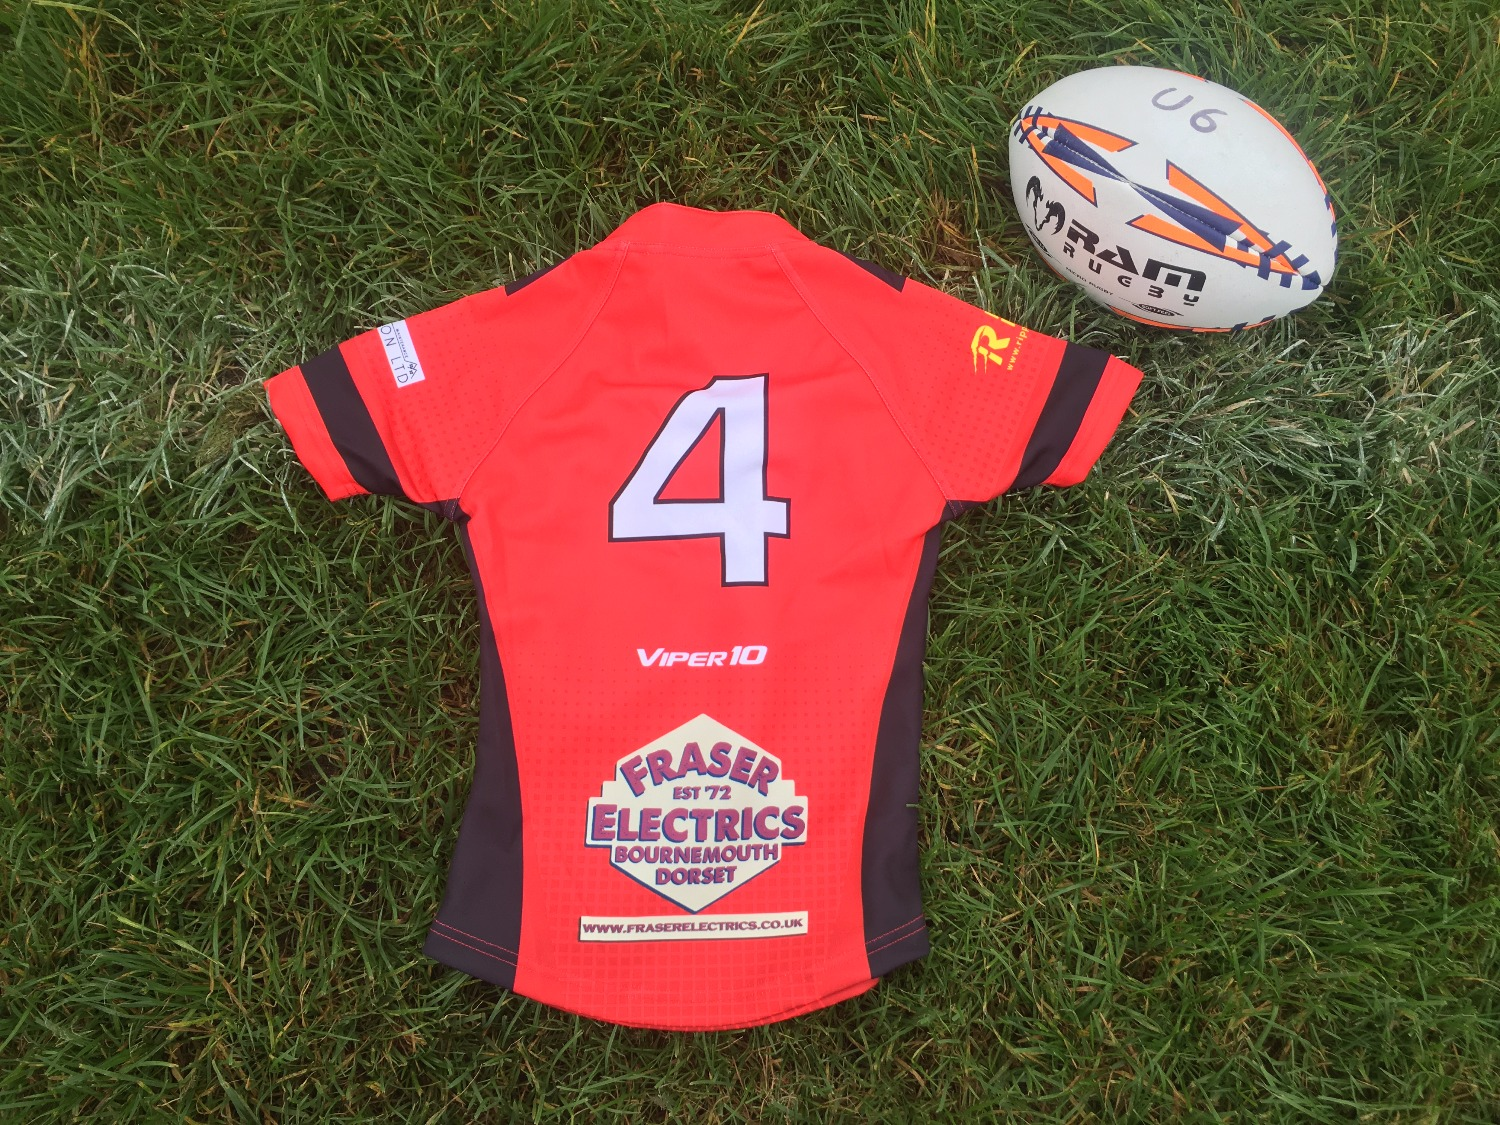 Bournemouth RFC U6 shirt